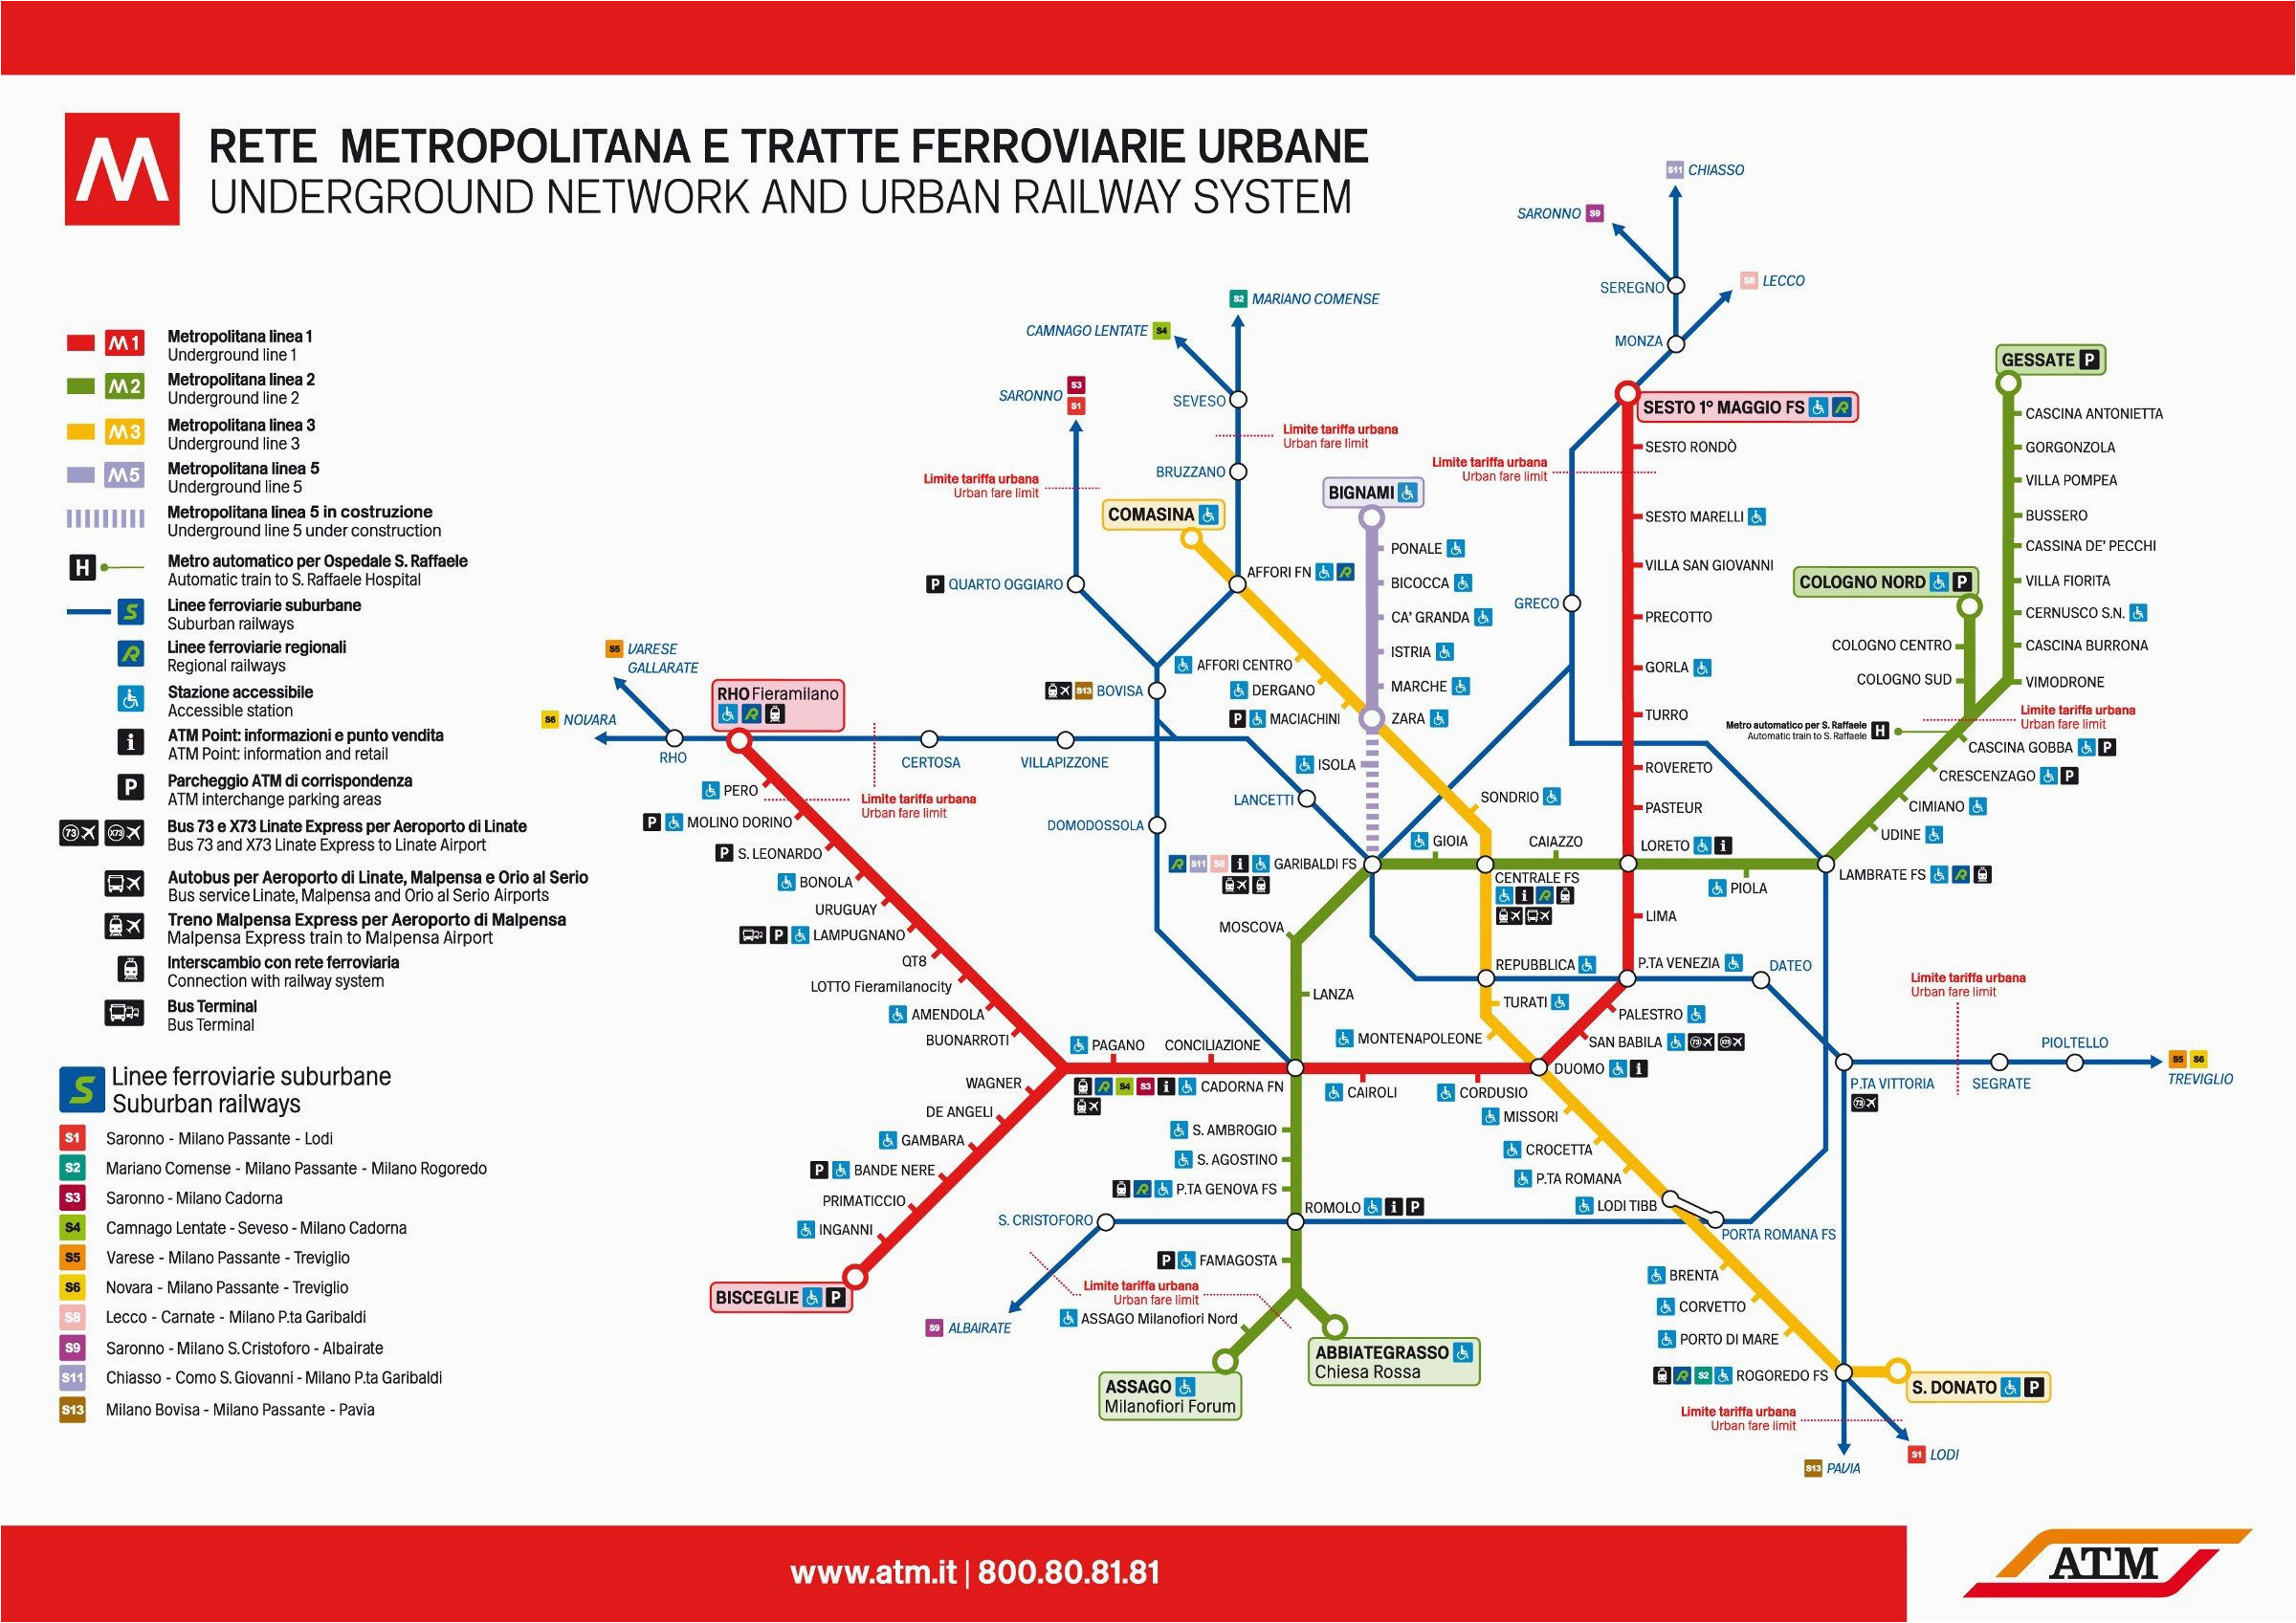 Montreal Subway Map Printable.Metro Map Of Rome Italy Rome Metro Map Pdf Google Search Places I D